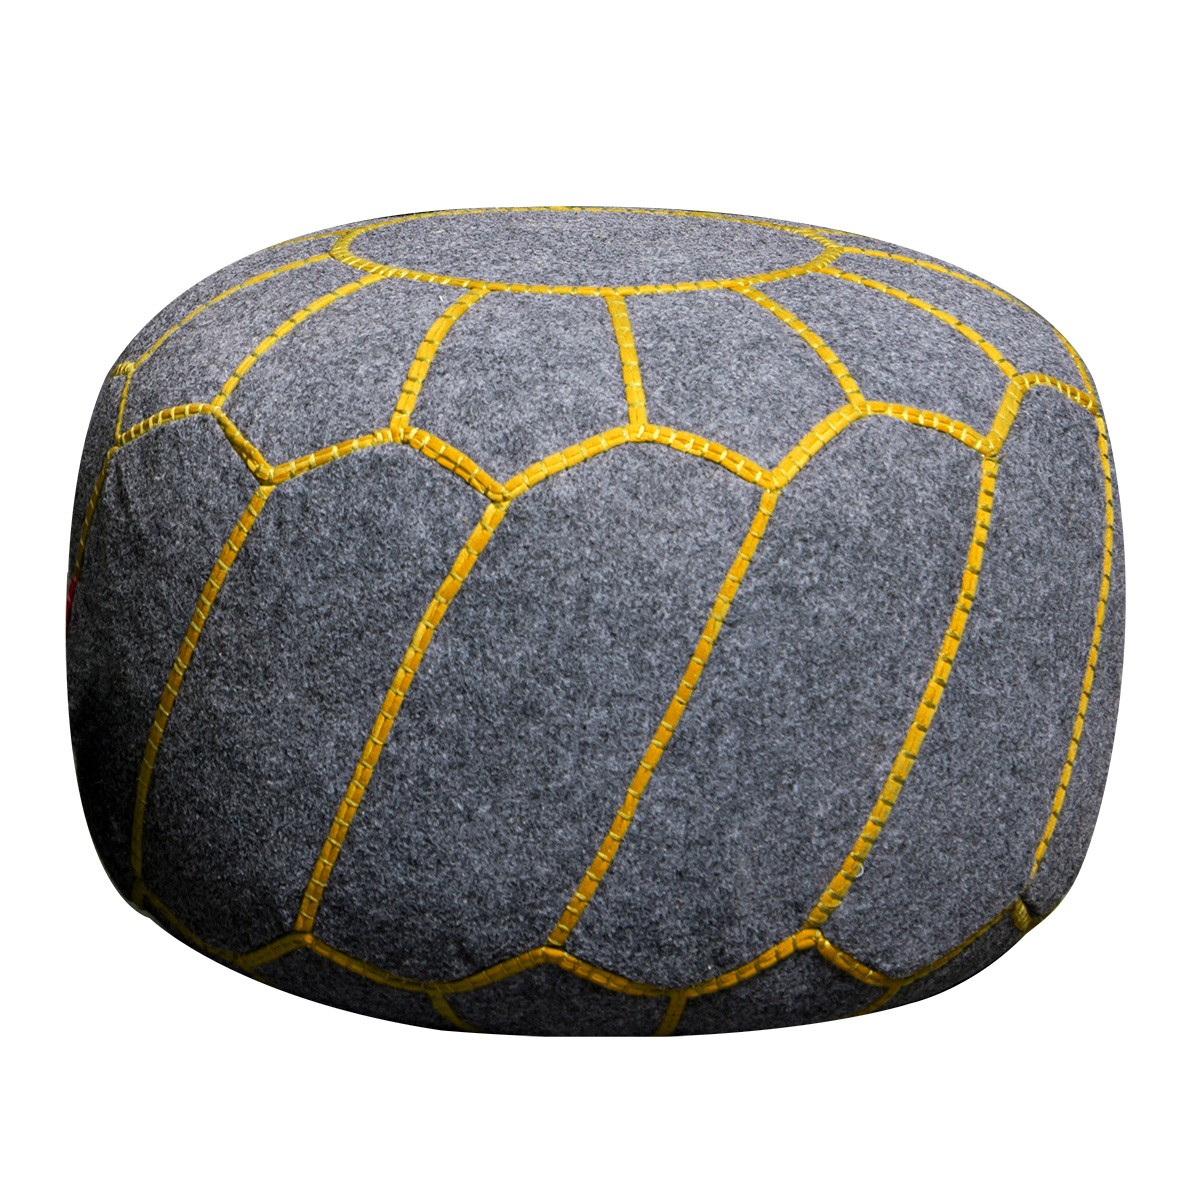 Yuba Felt Round Pouf, Grey / Yellow